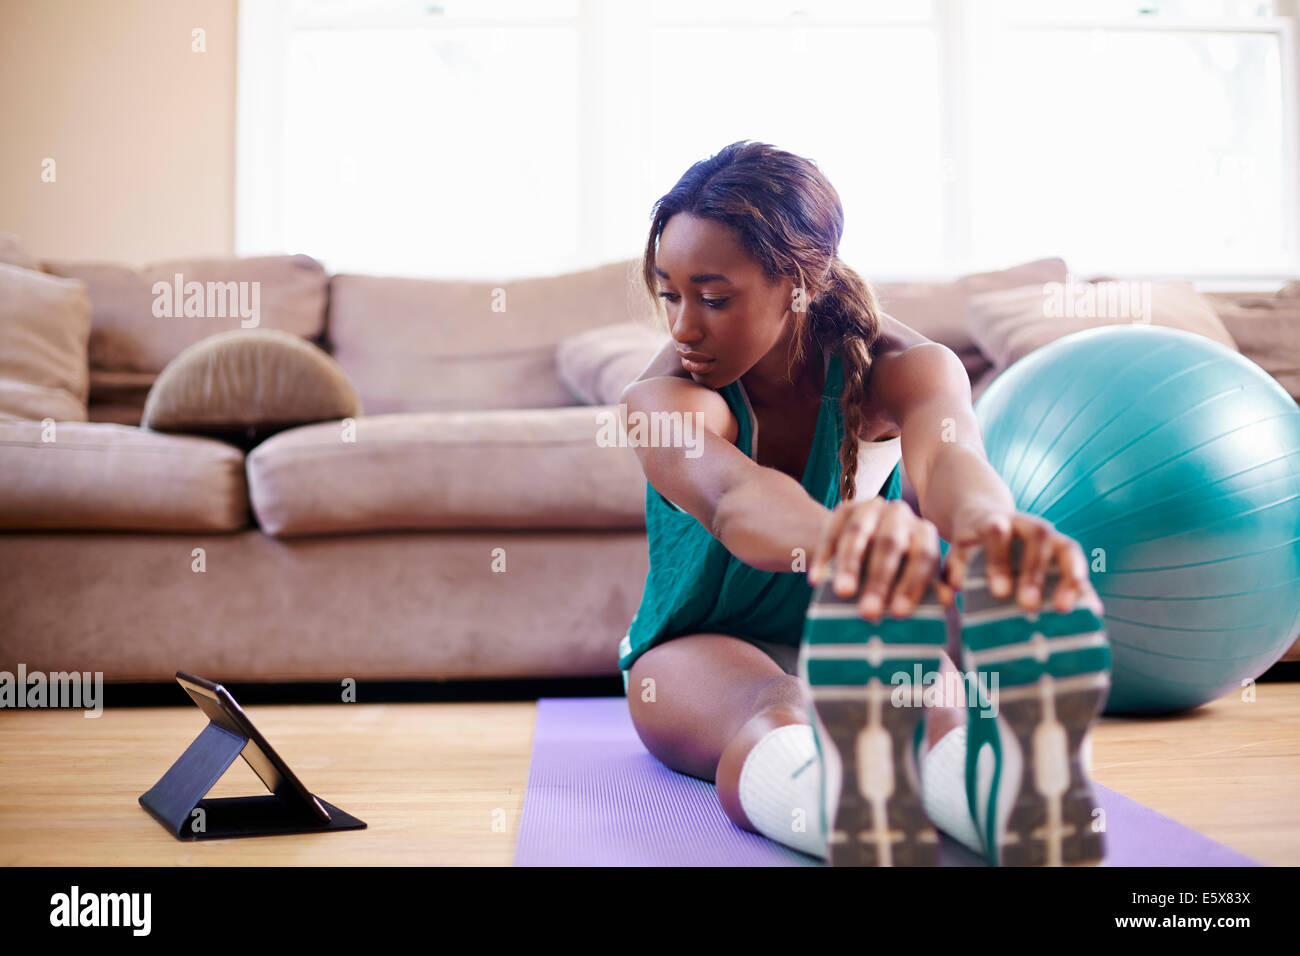 Young woman exercising on sitting room floor whilst looking at digital tablet - Stock Image